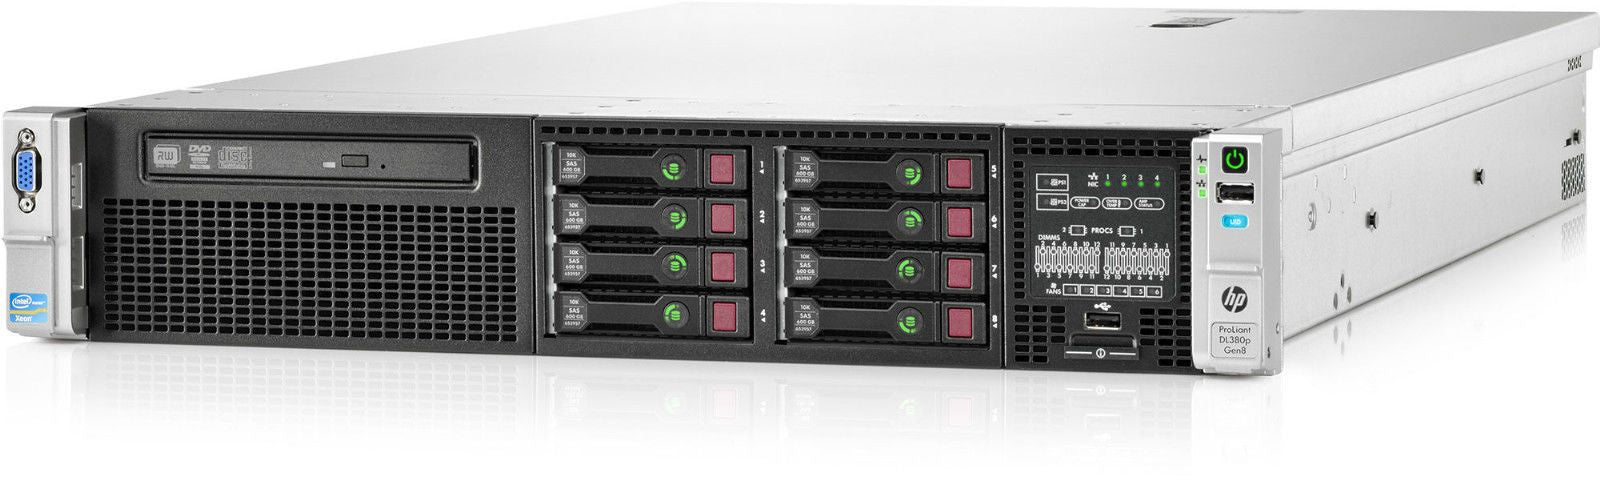 653200-B21 - HPE ProLiant DL380p Gen8 8SFF Server Chassis